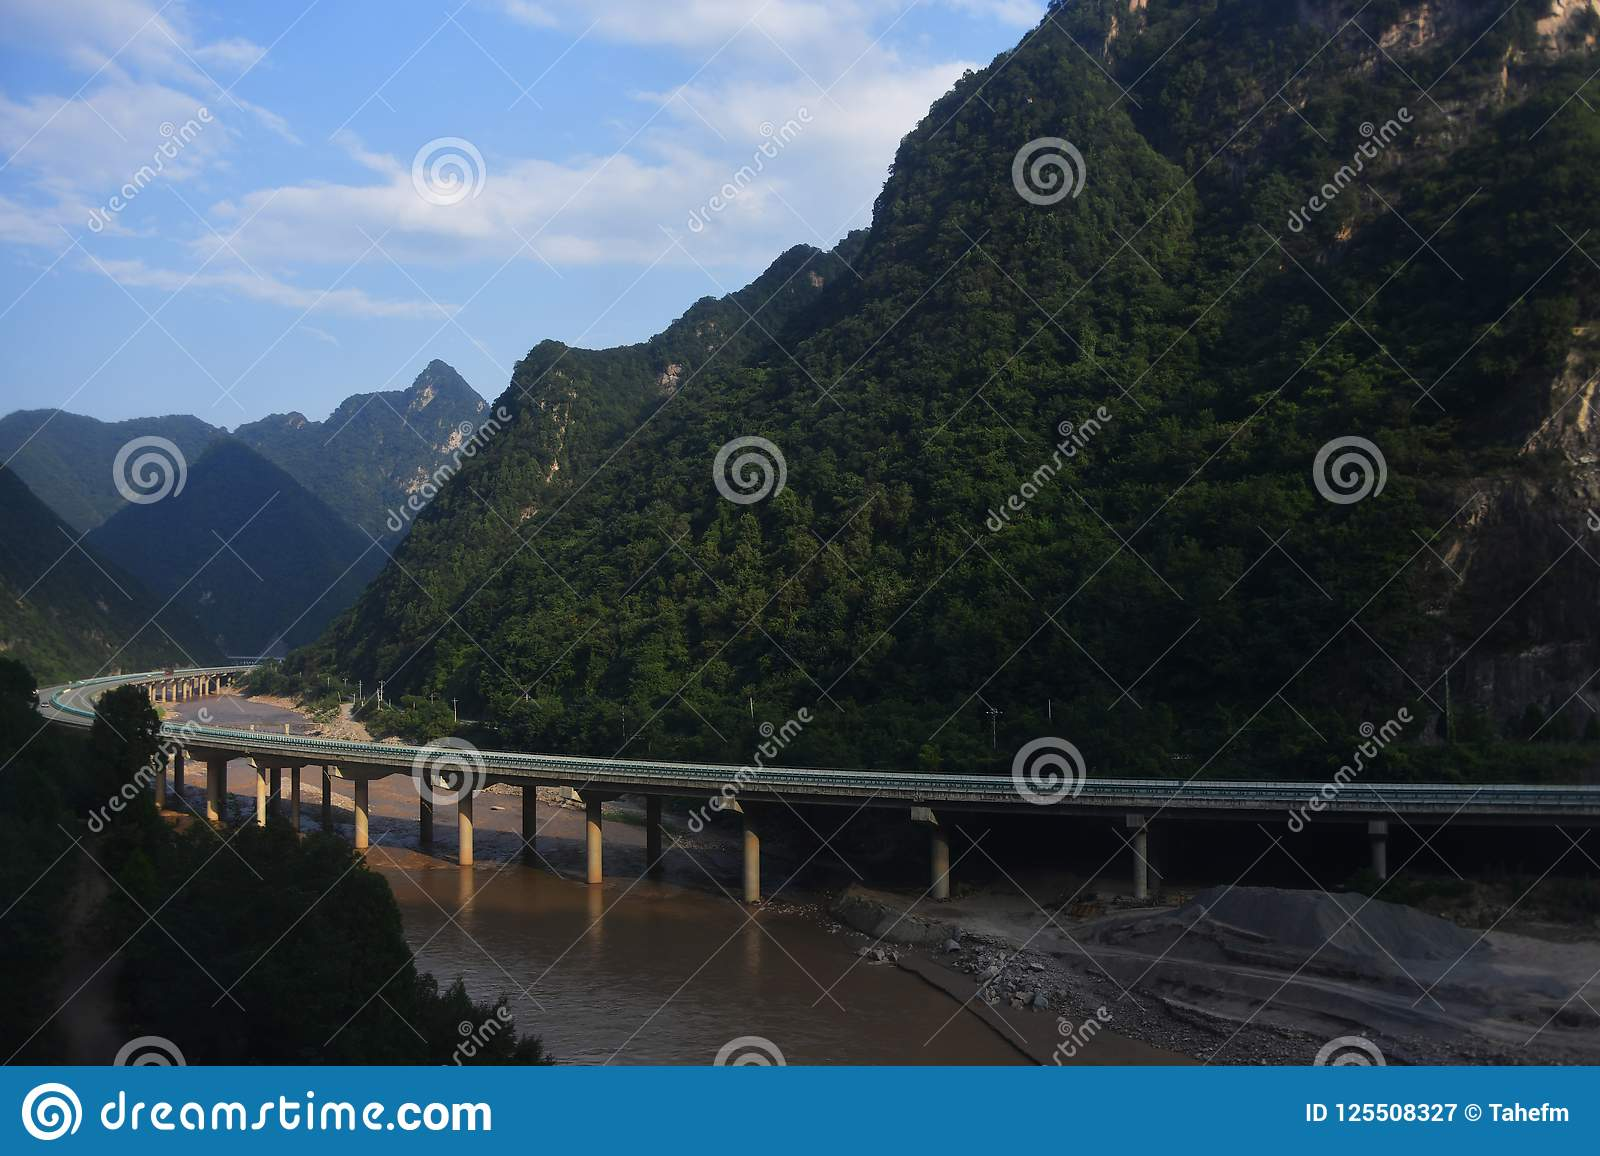 Qinling Mountains: scenery on the north south boundary of China